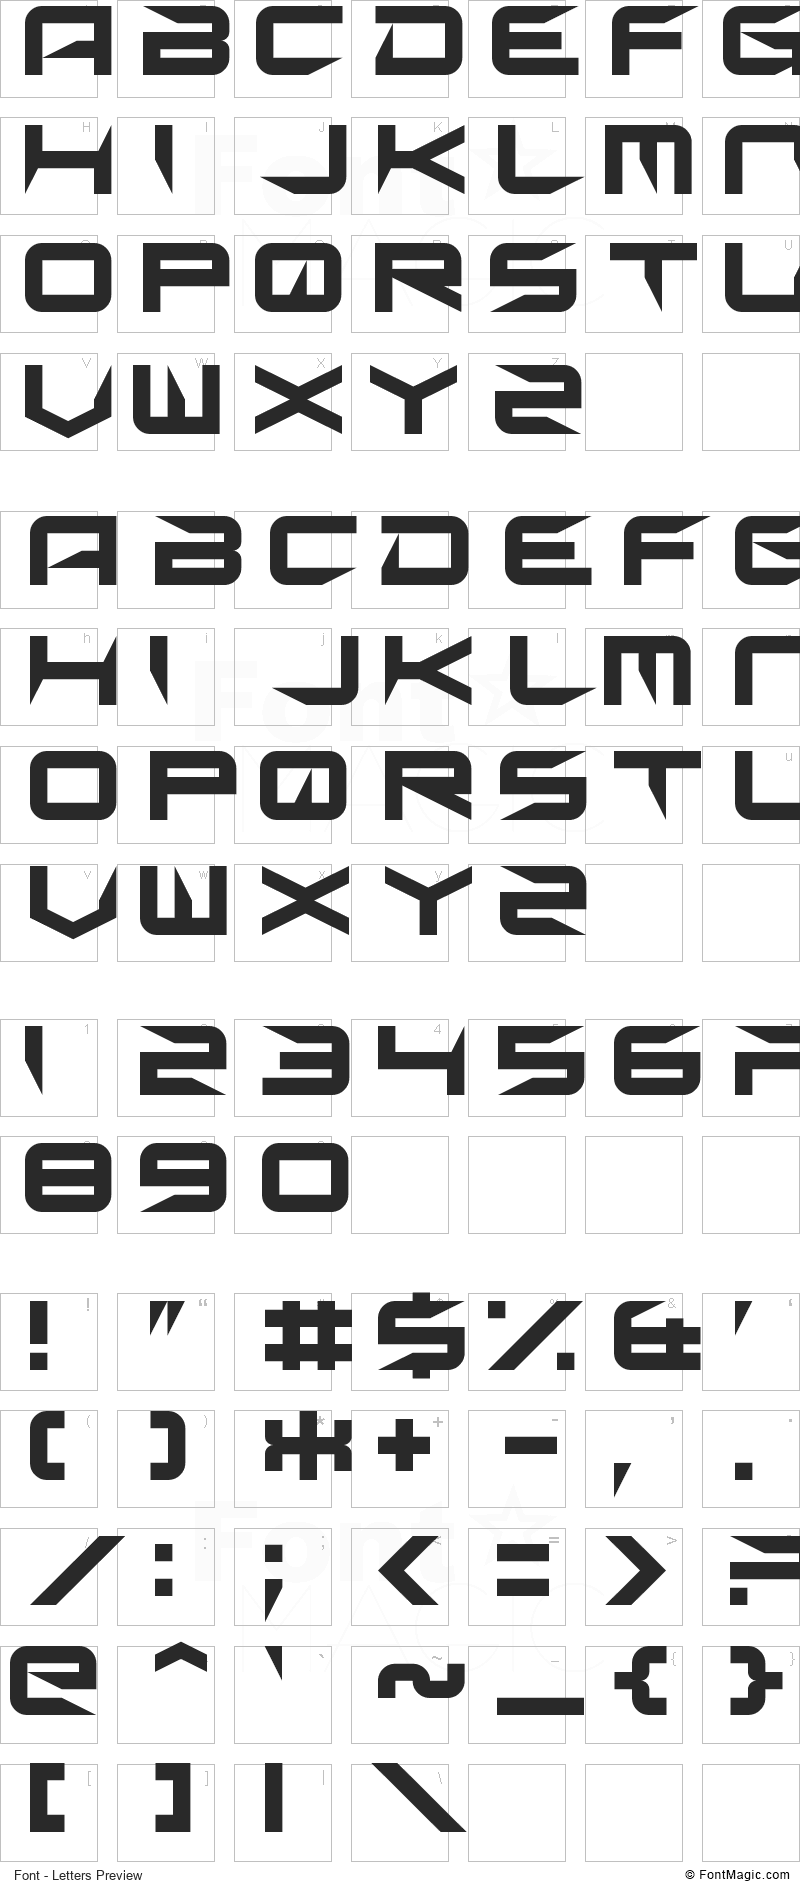 Sharp Font - All Latters Preview Chart